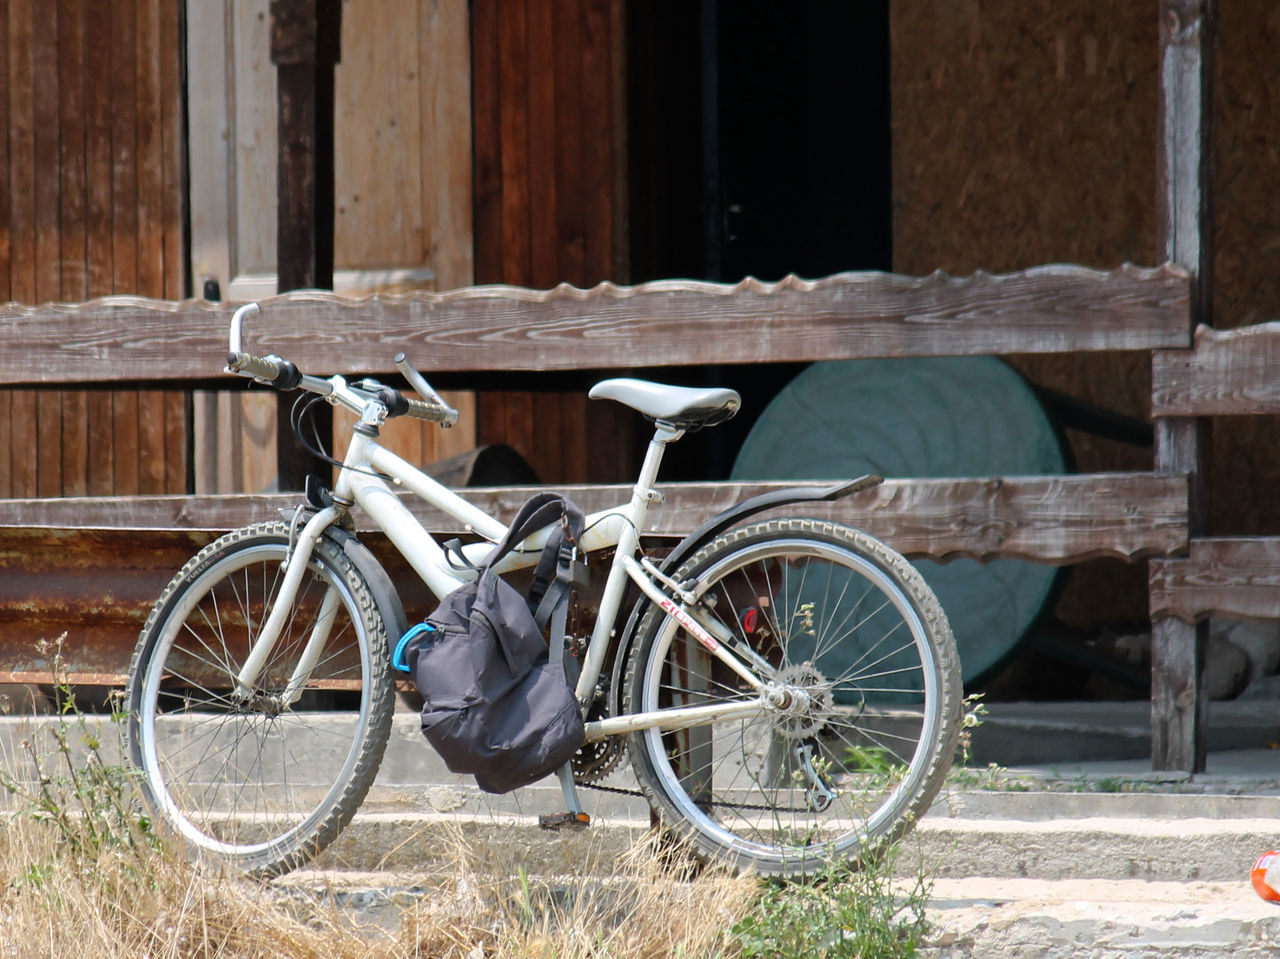 transportation, bicycle, mode of transport, land vehicle, stationary, wheel, outdoors, day, no people, architecture, building exterior